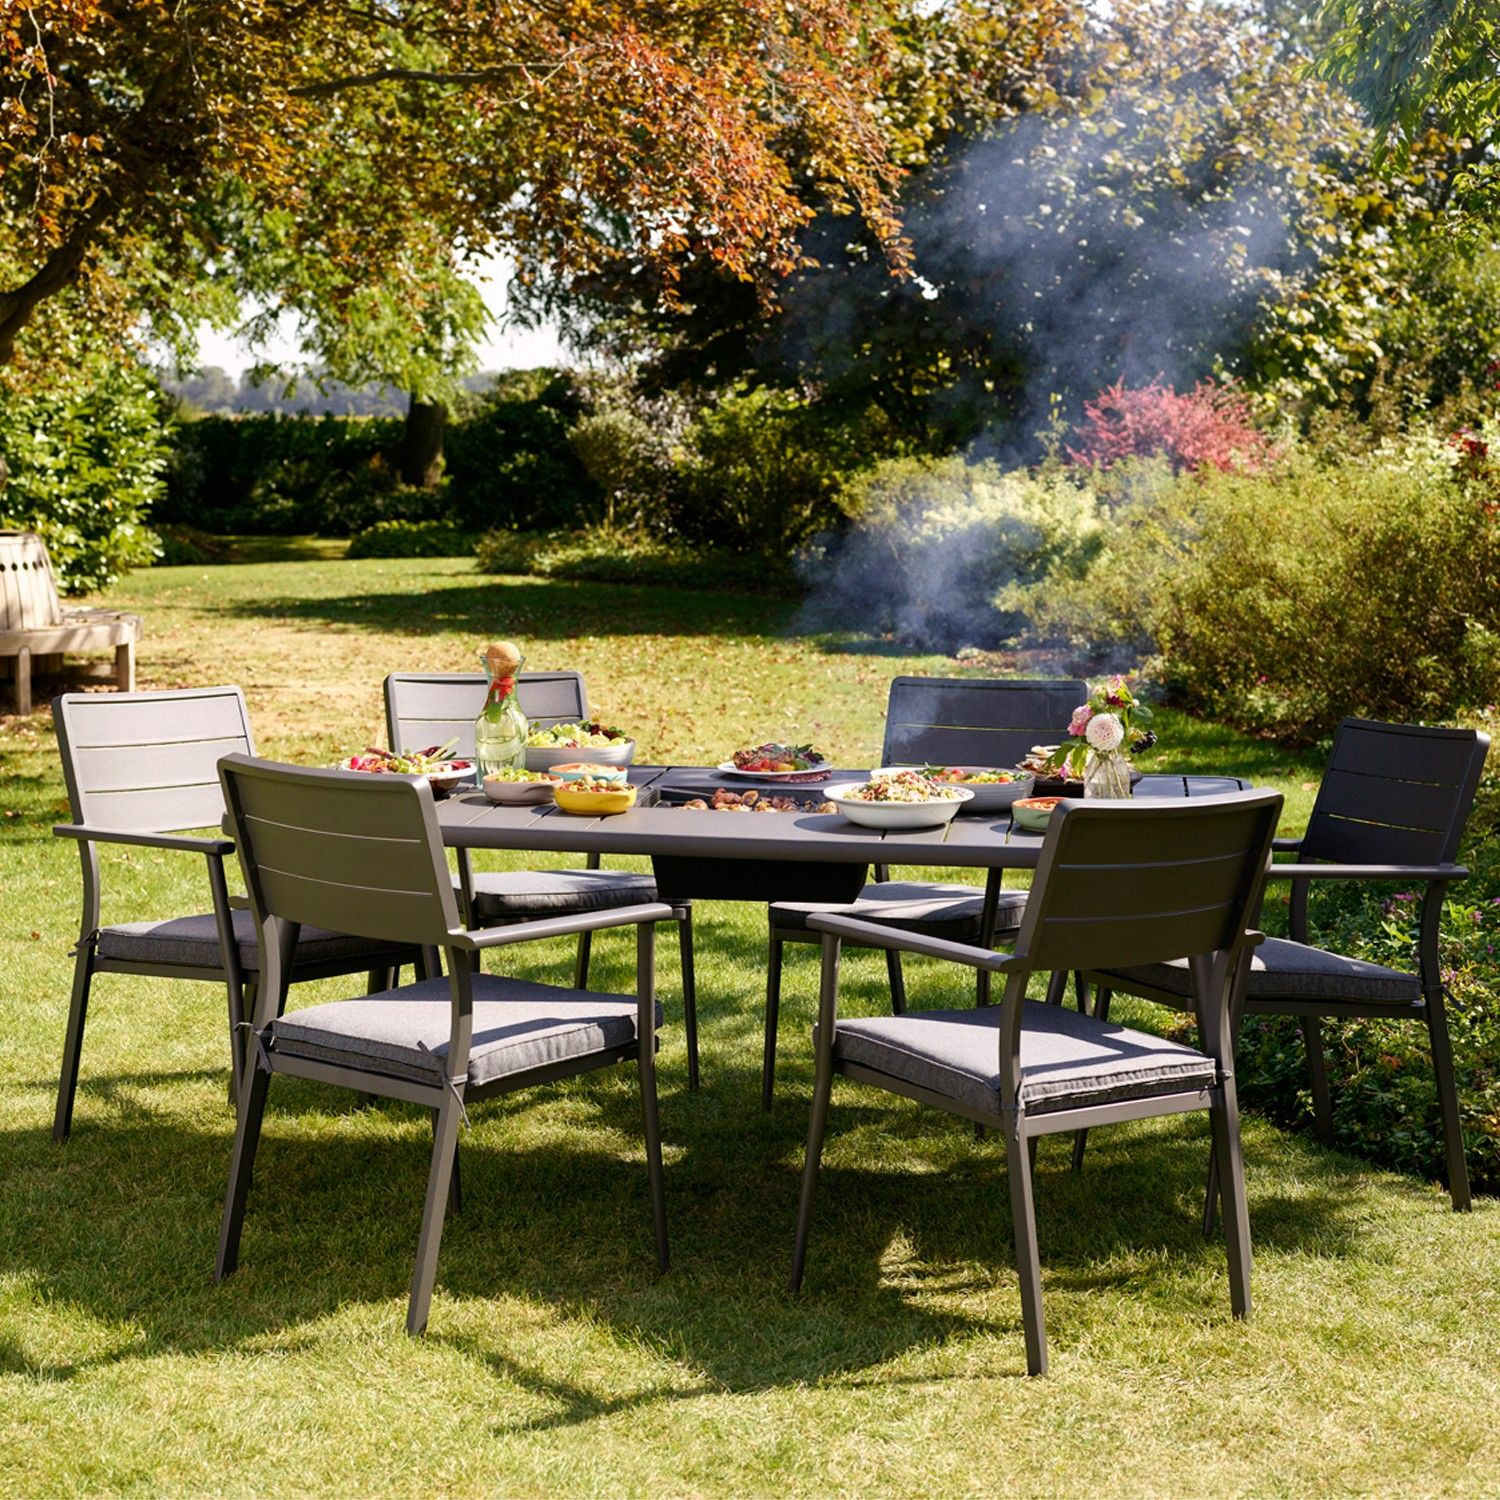 Impress your guests with the Jamie Oliver Caraway Firepit Set and cook their foo…